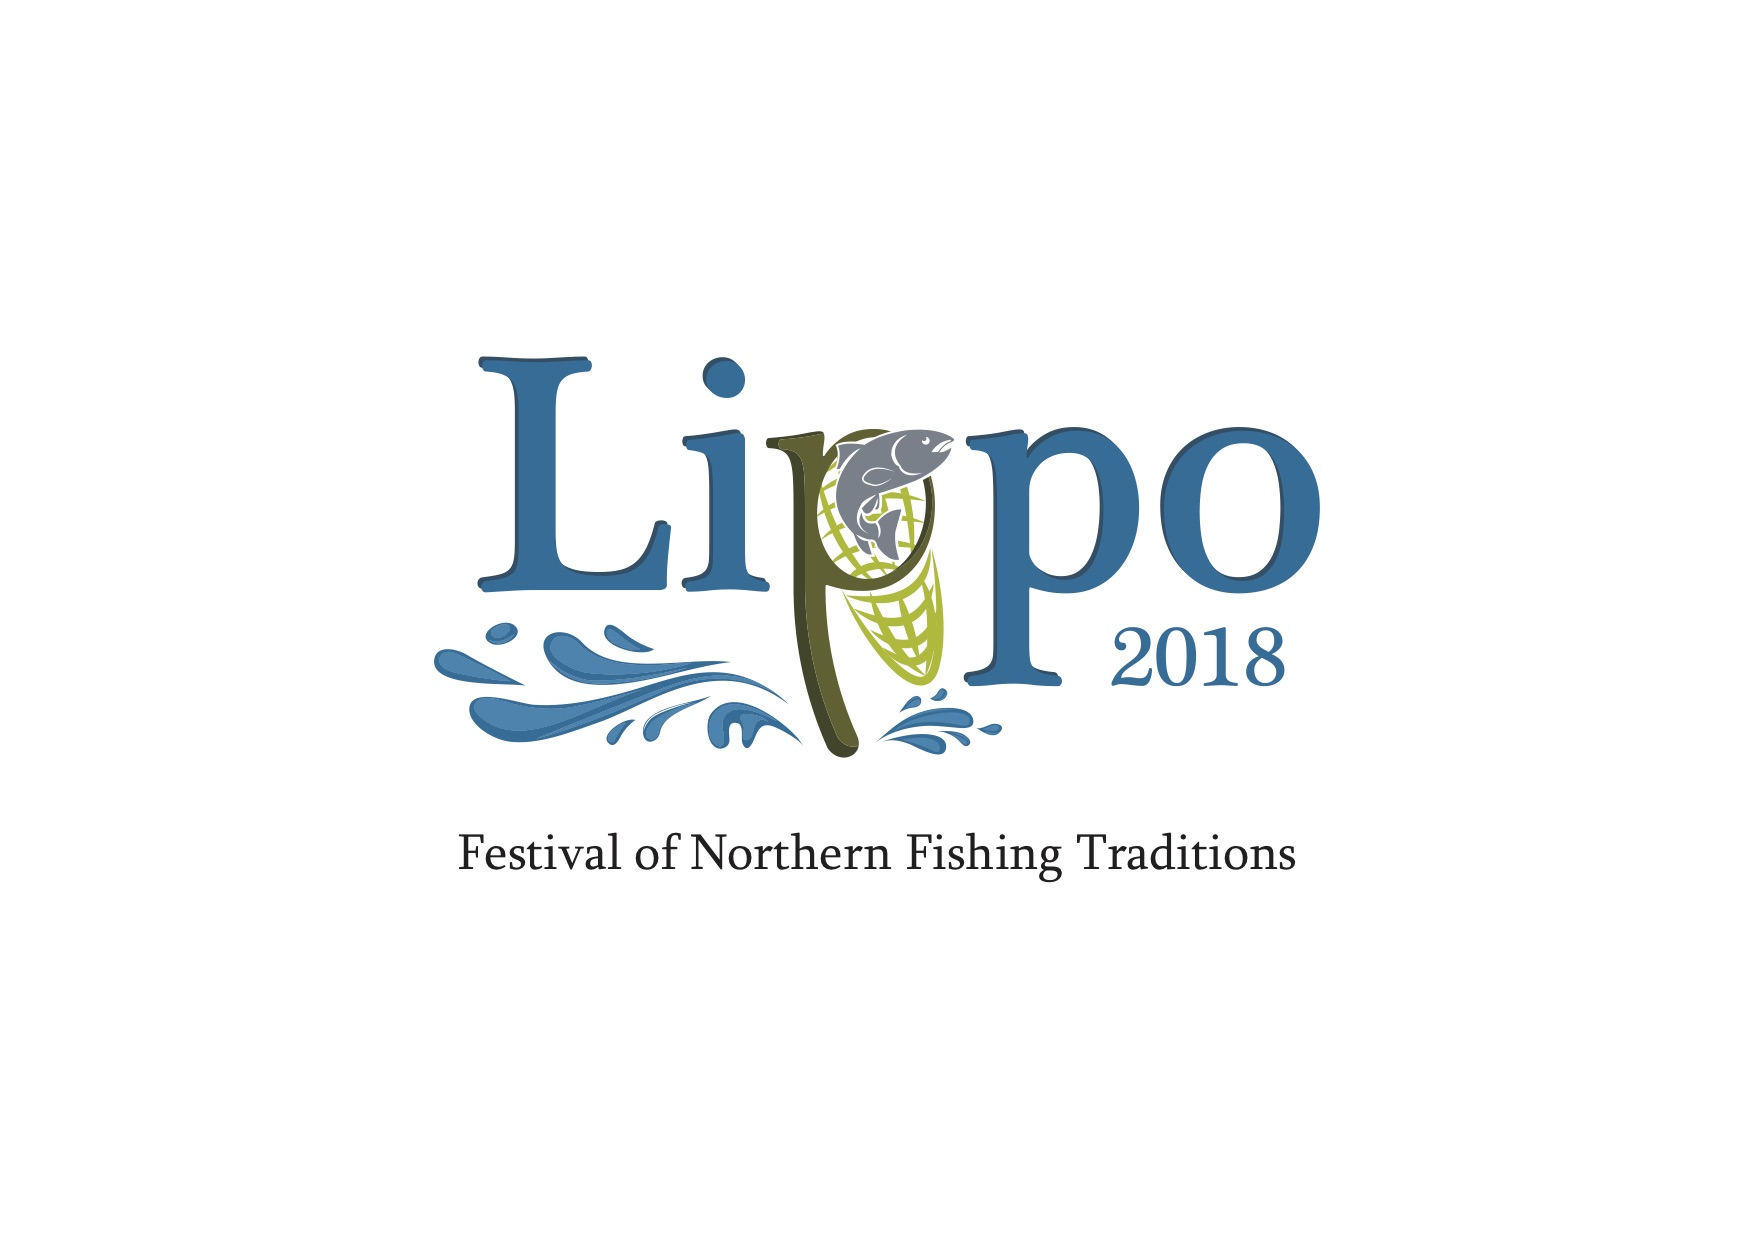 Lippo - Festival of Northern Fishing Traditions logo vertical with slogan